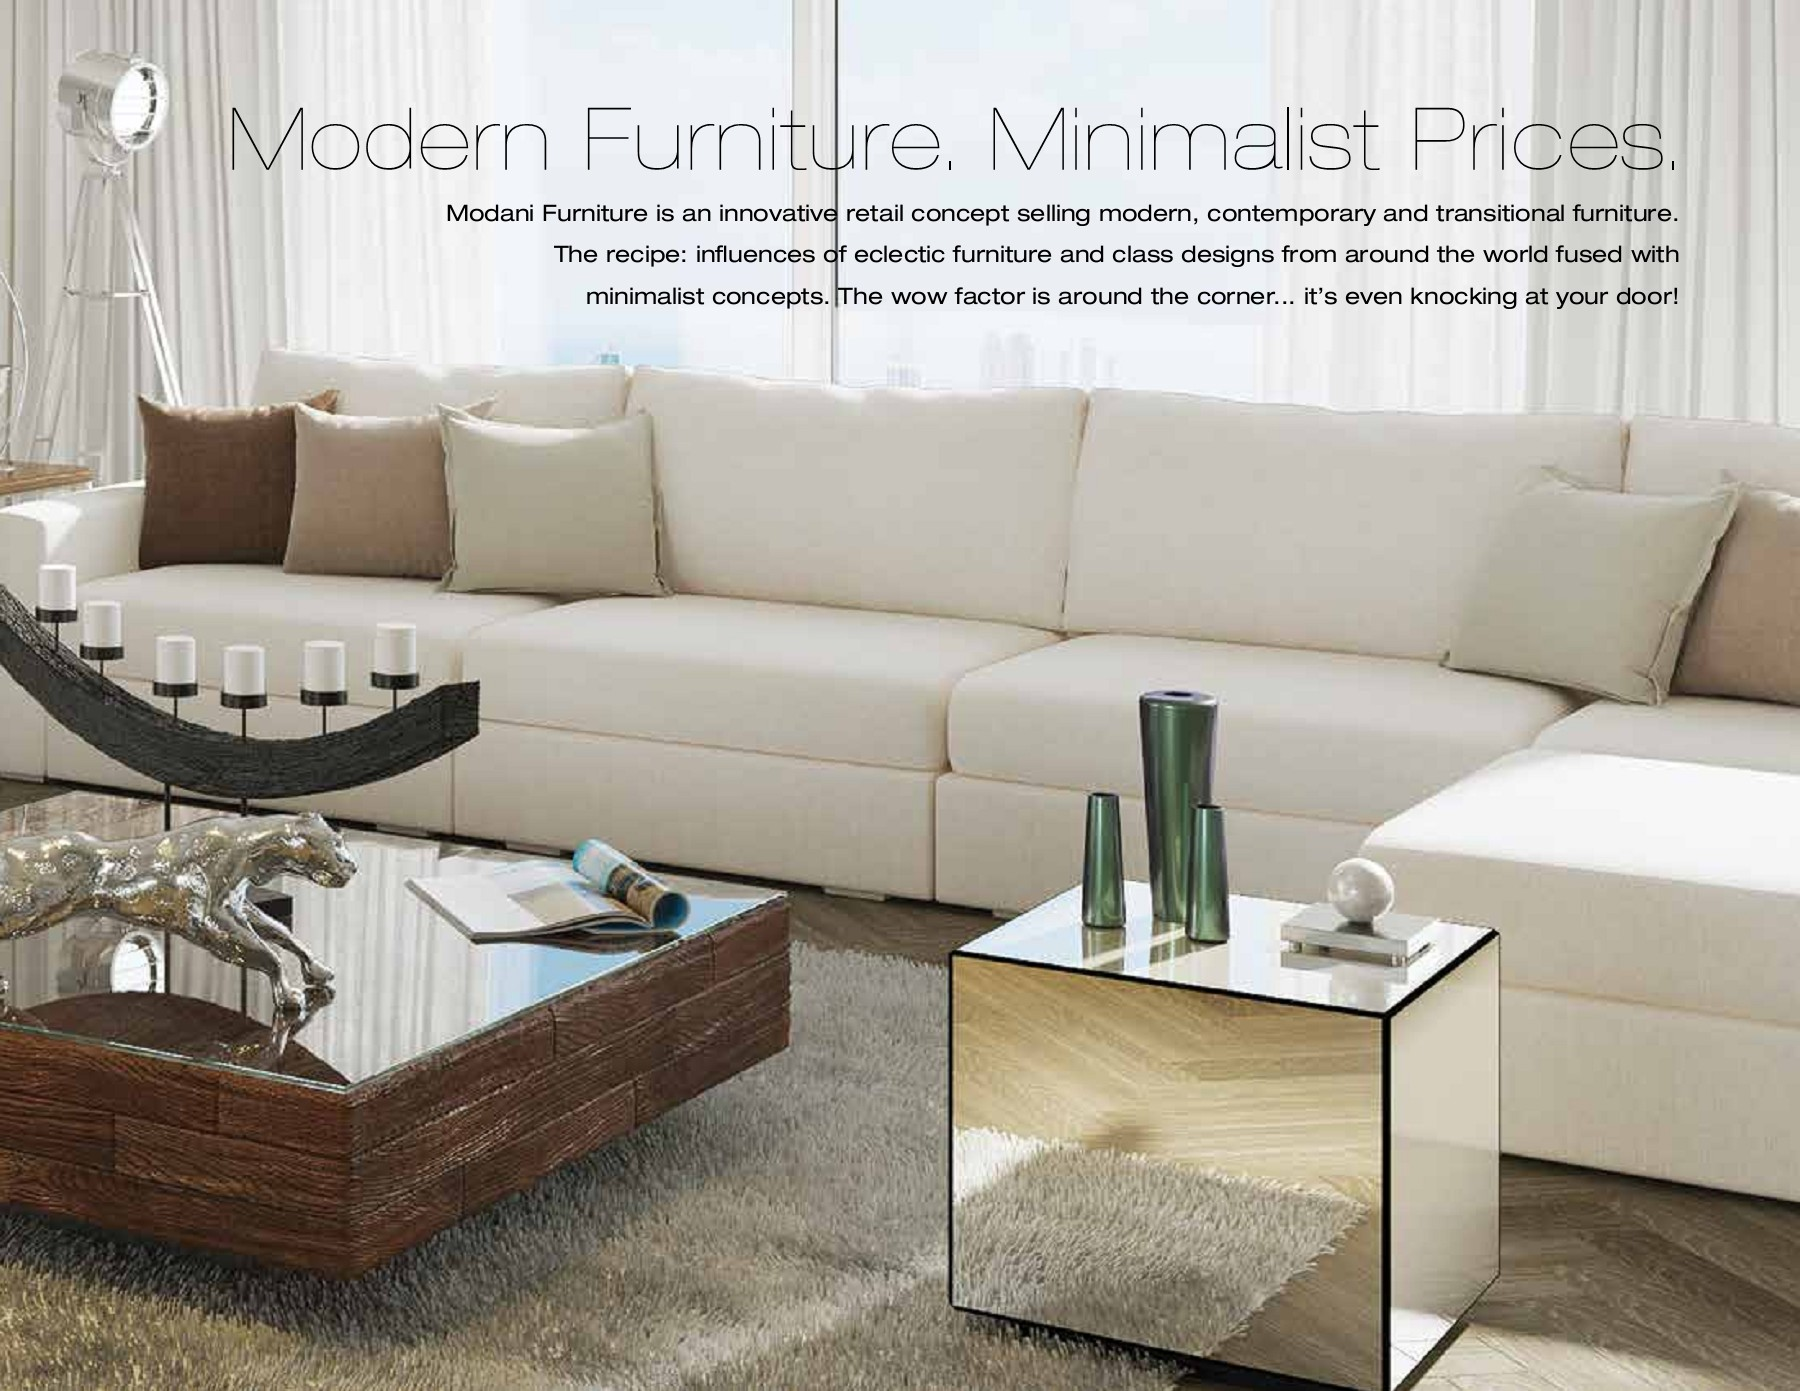 Catalog 2016 pages 1 50 text version anyflip